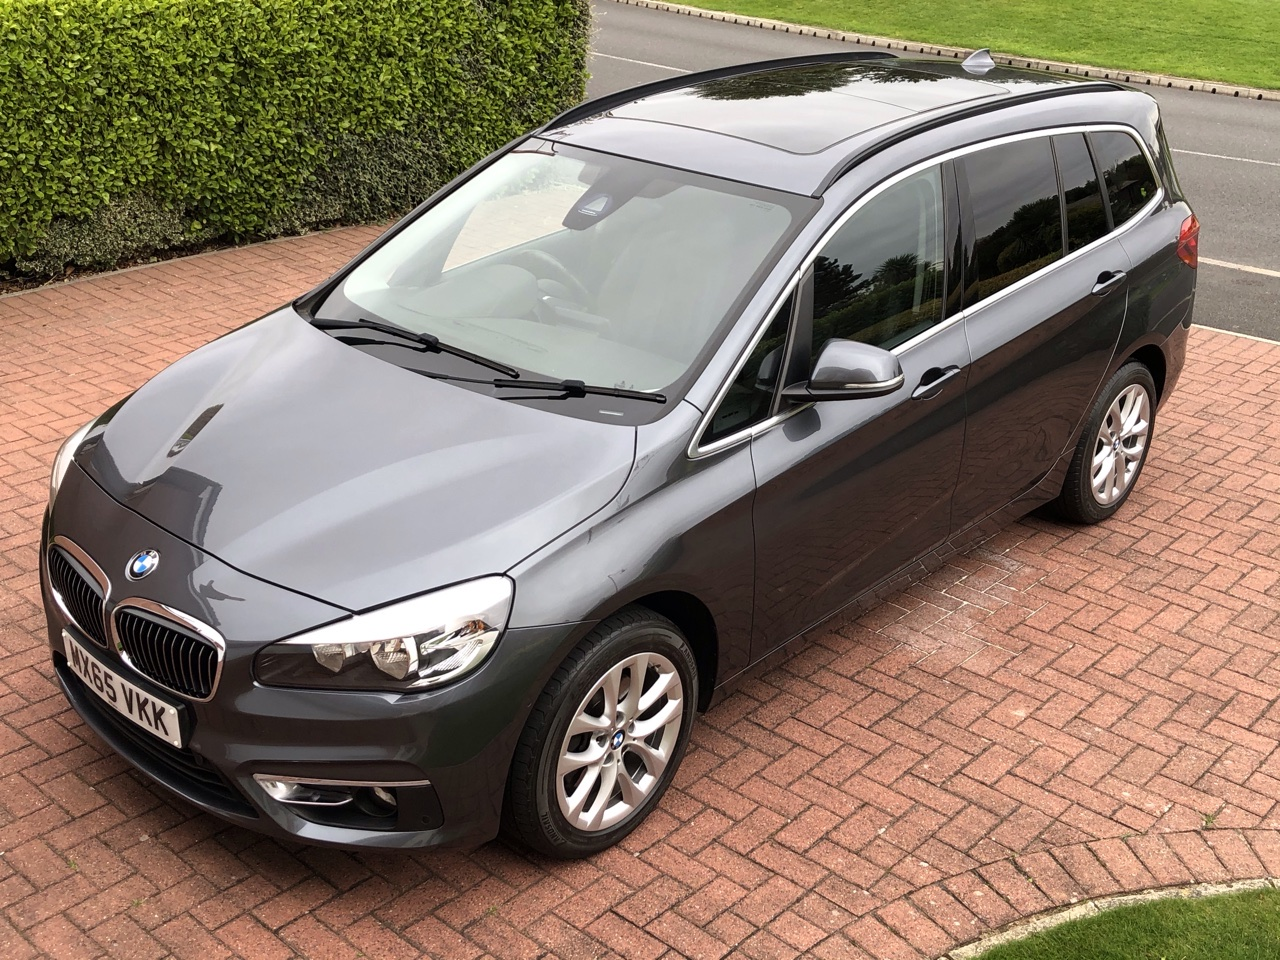 2015 65 BMW 218i GRAN TOURER LUXURY 5 DOOR MANUAL 7 SEATER